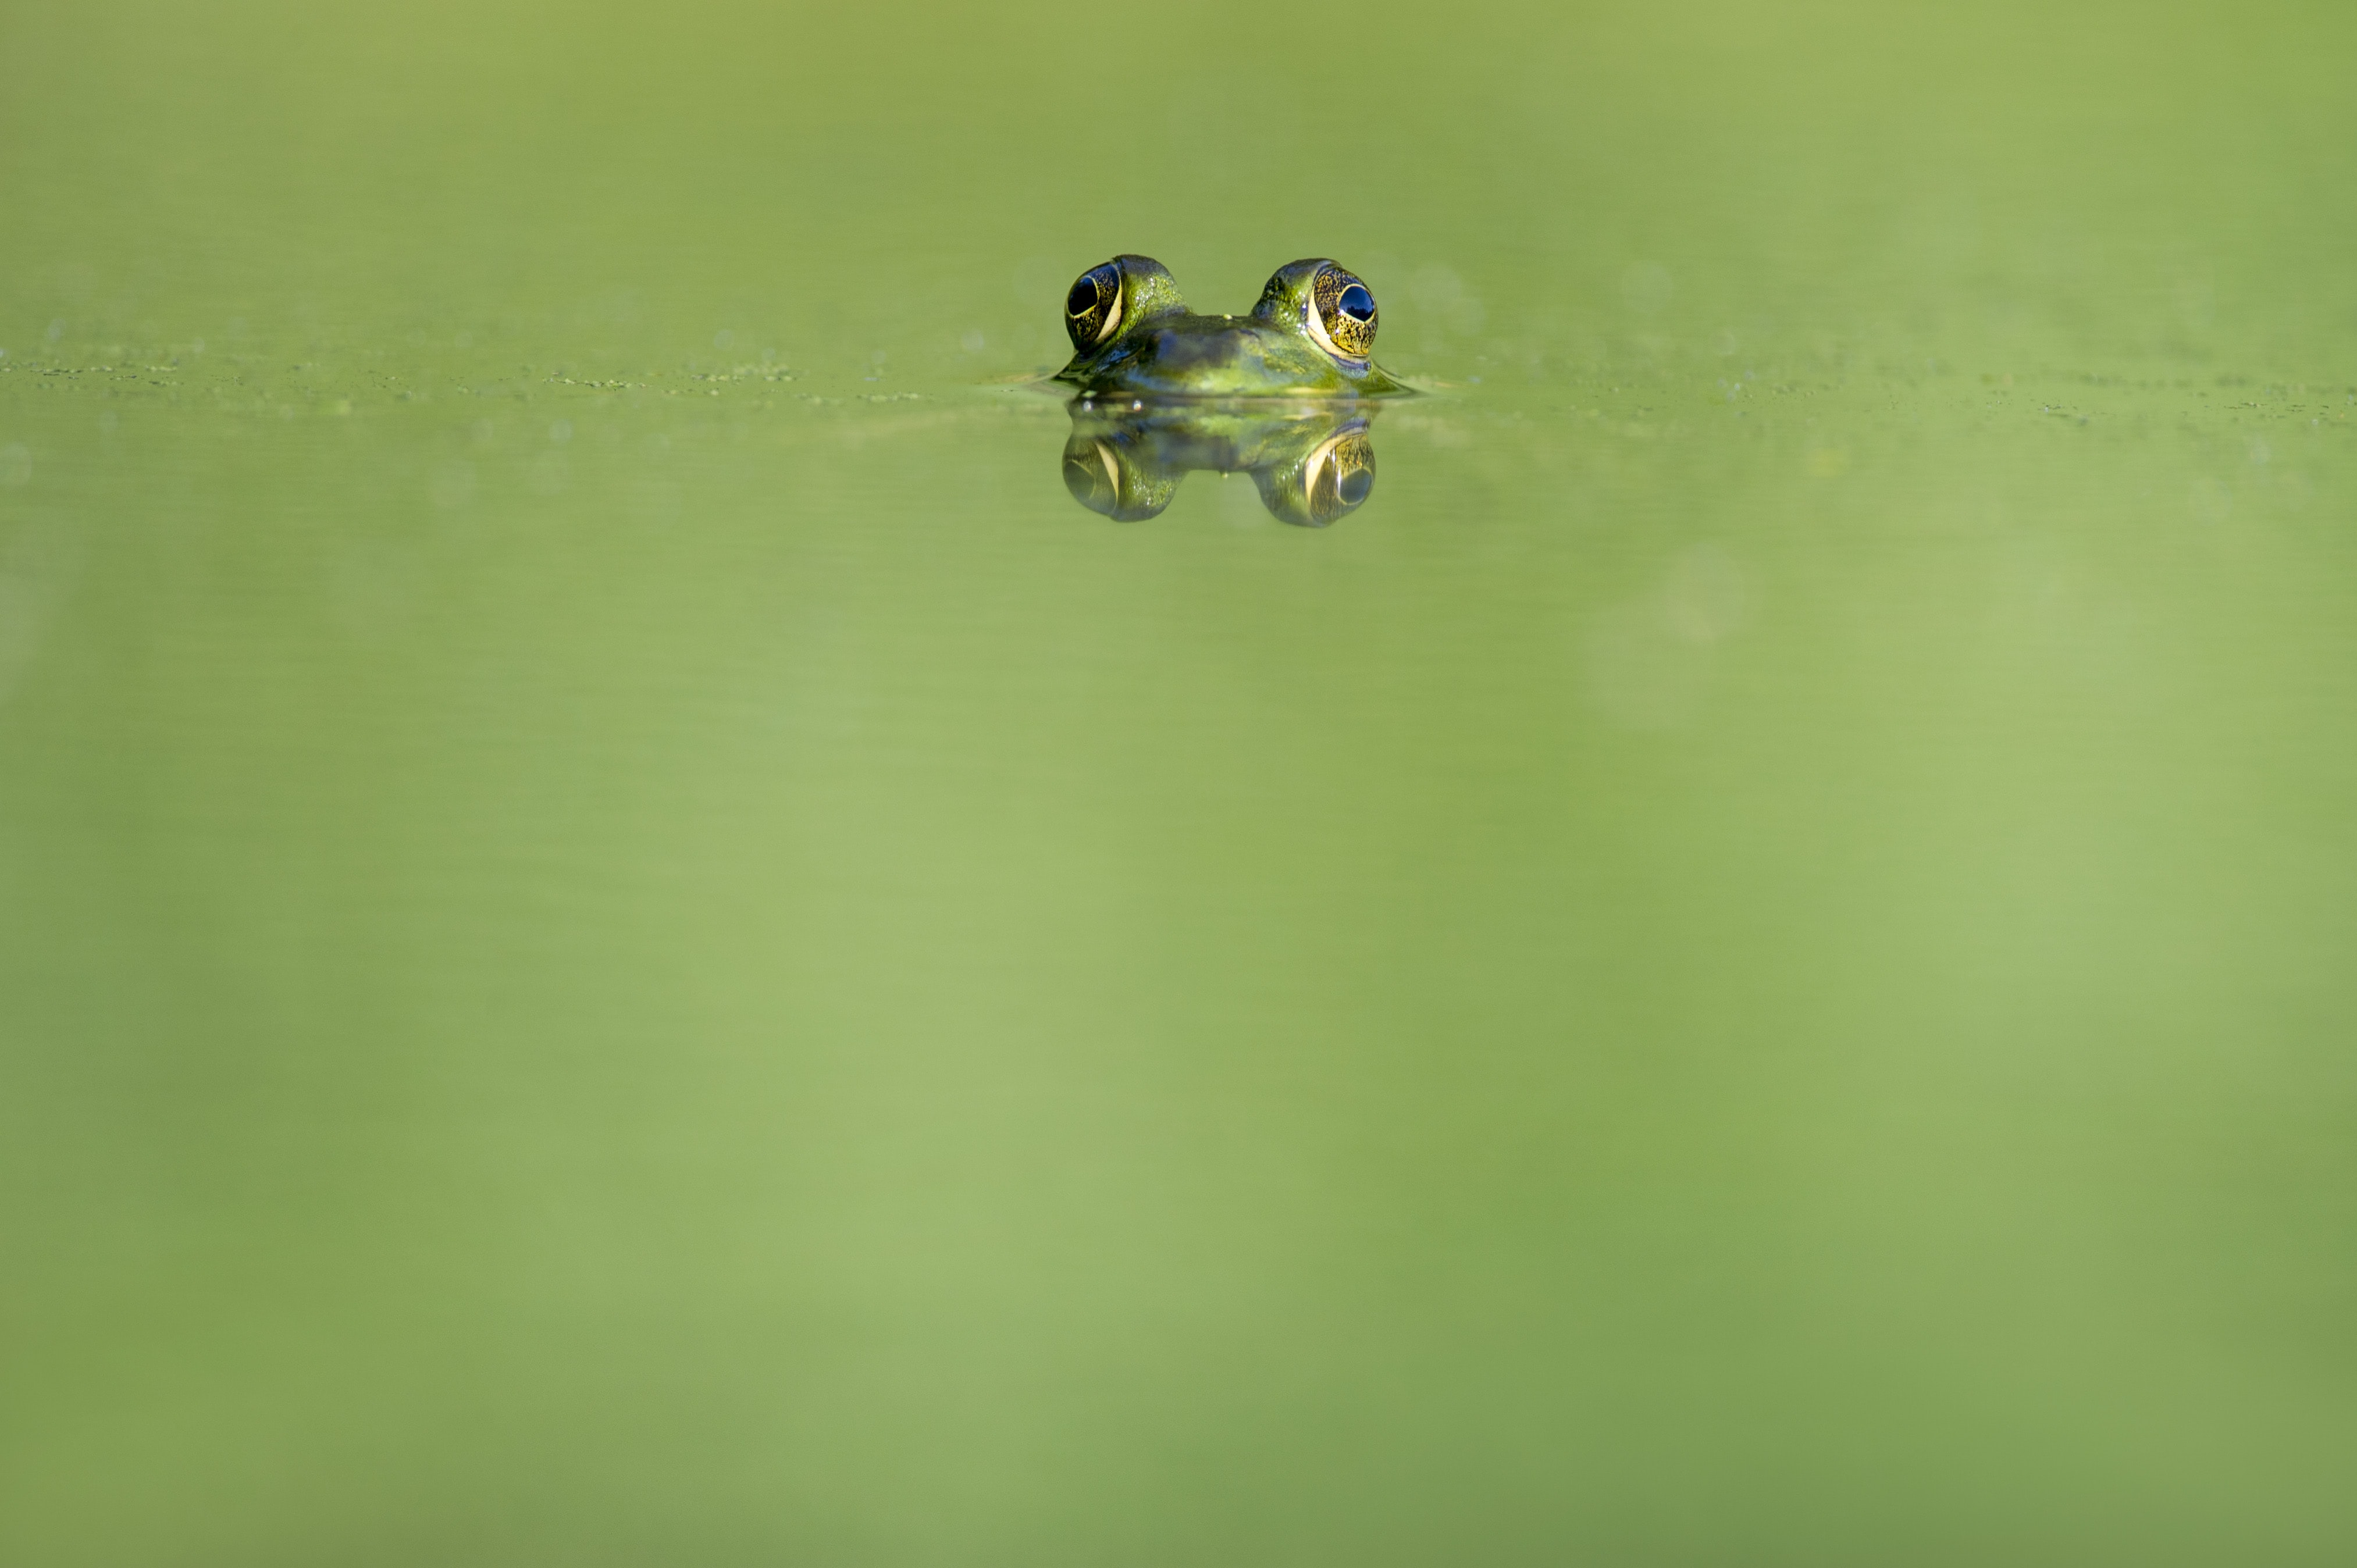 green frog swimming on water